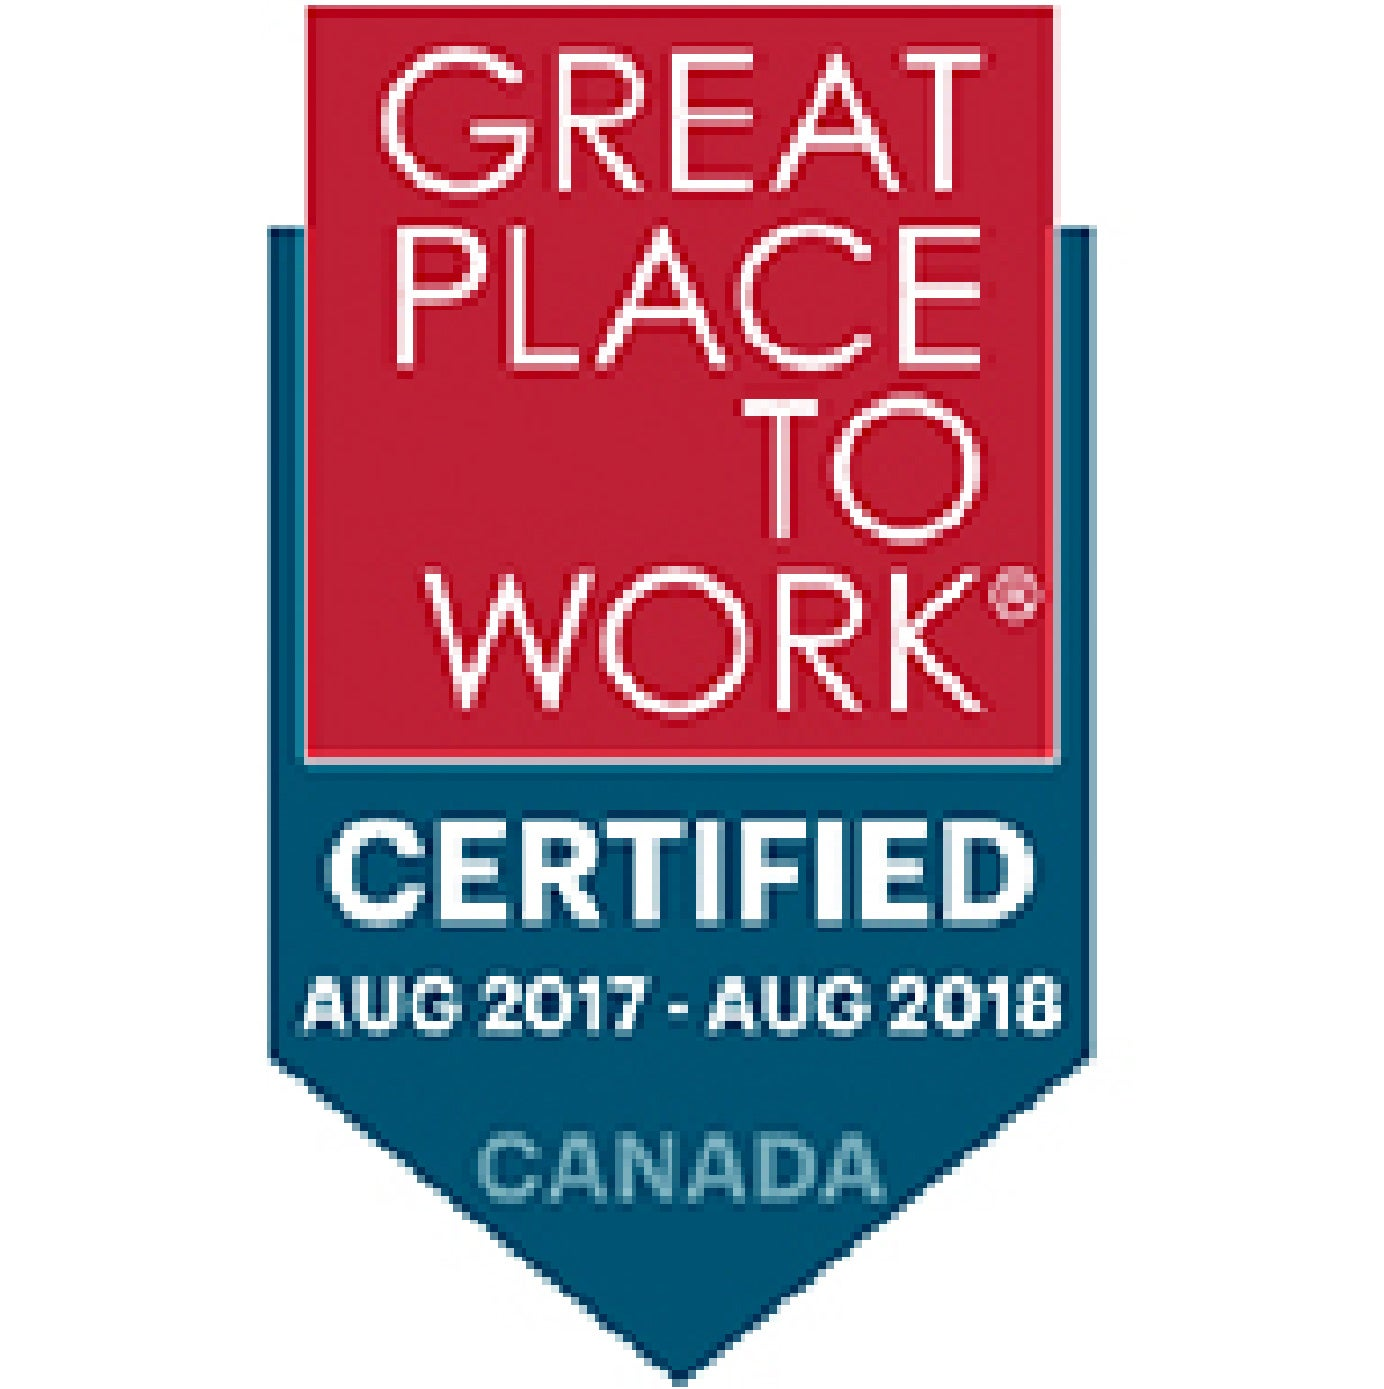 2017-2018 Great Place To Work Certified